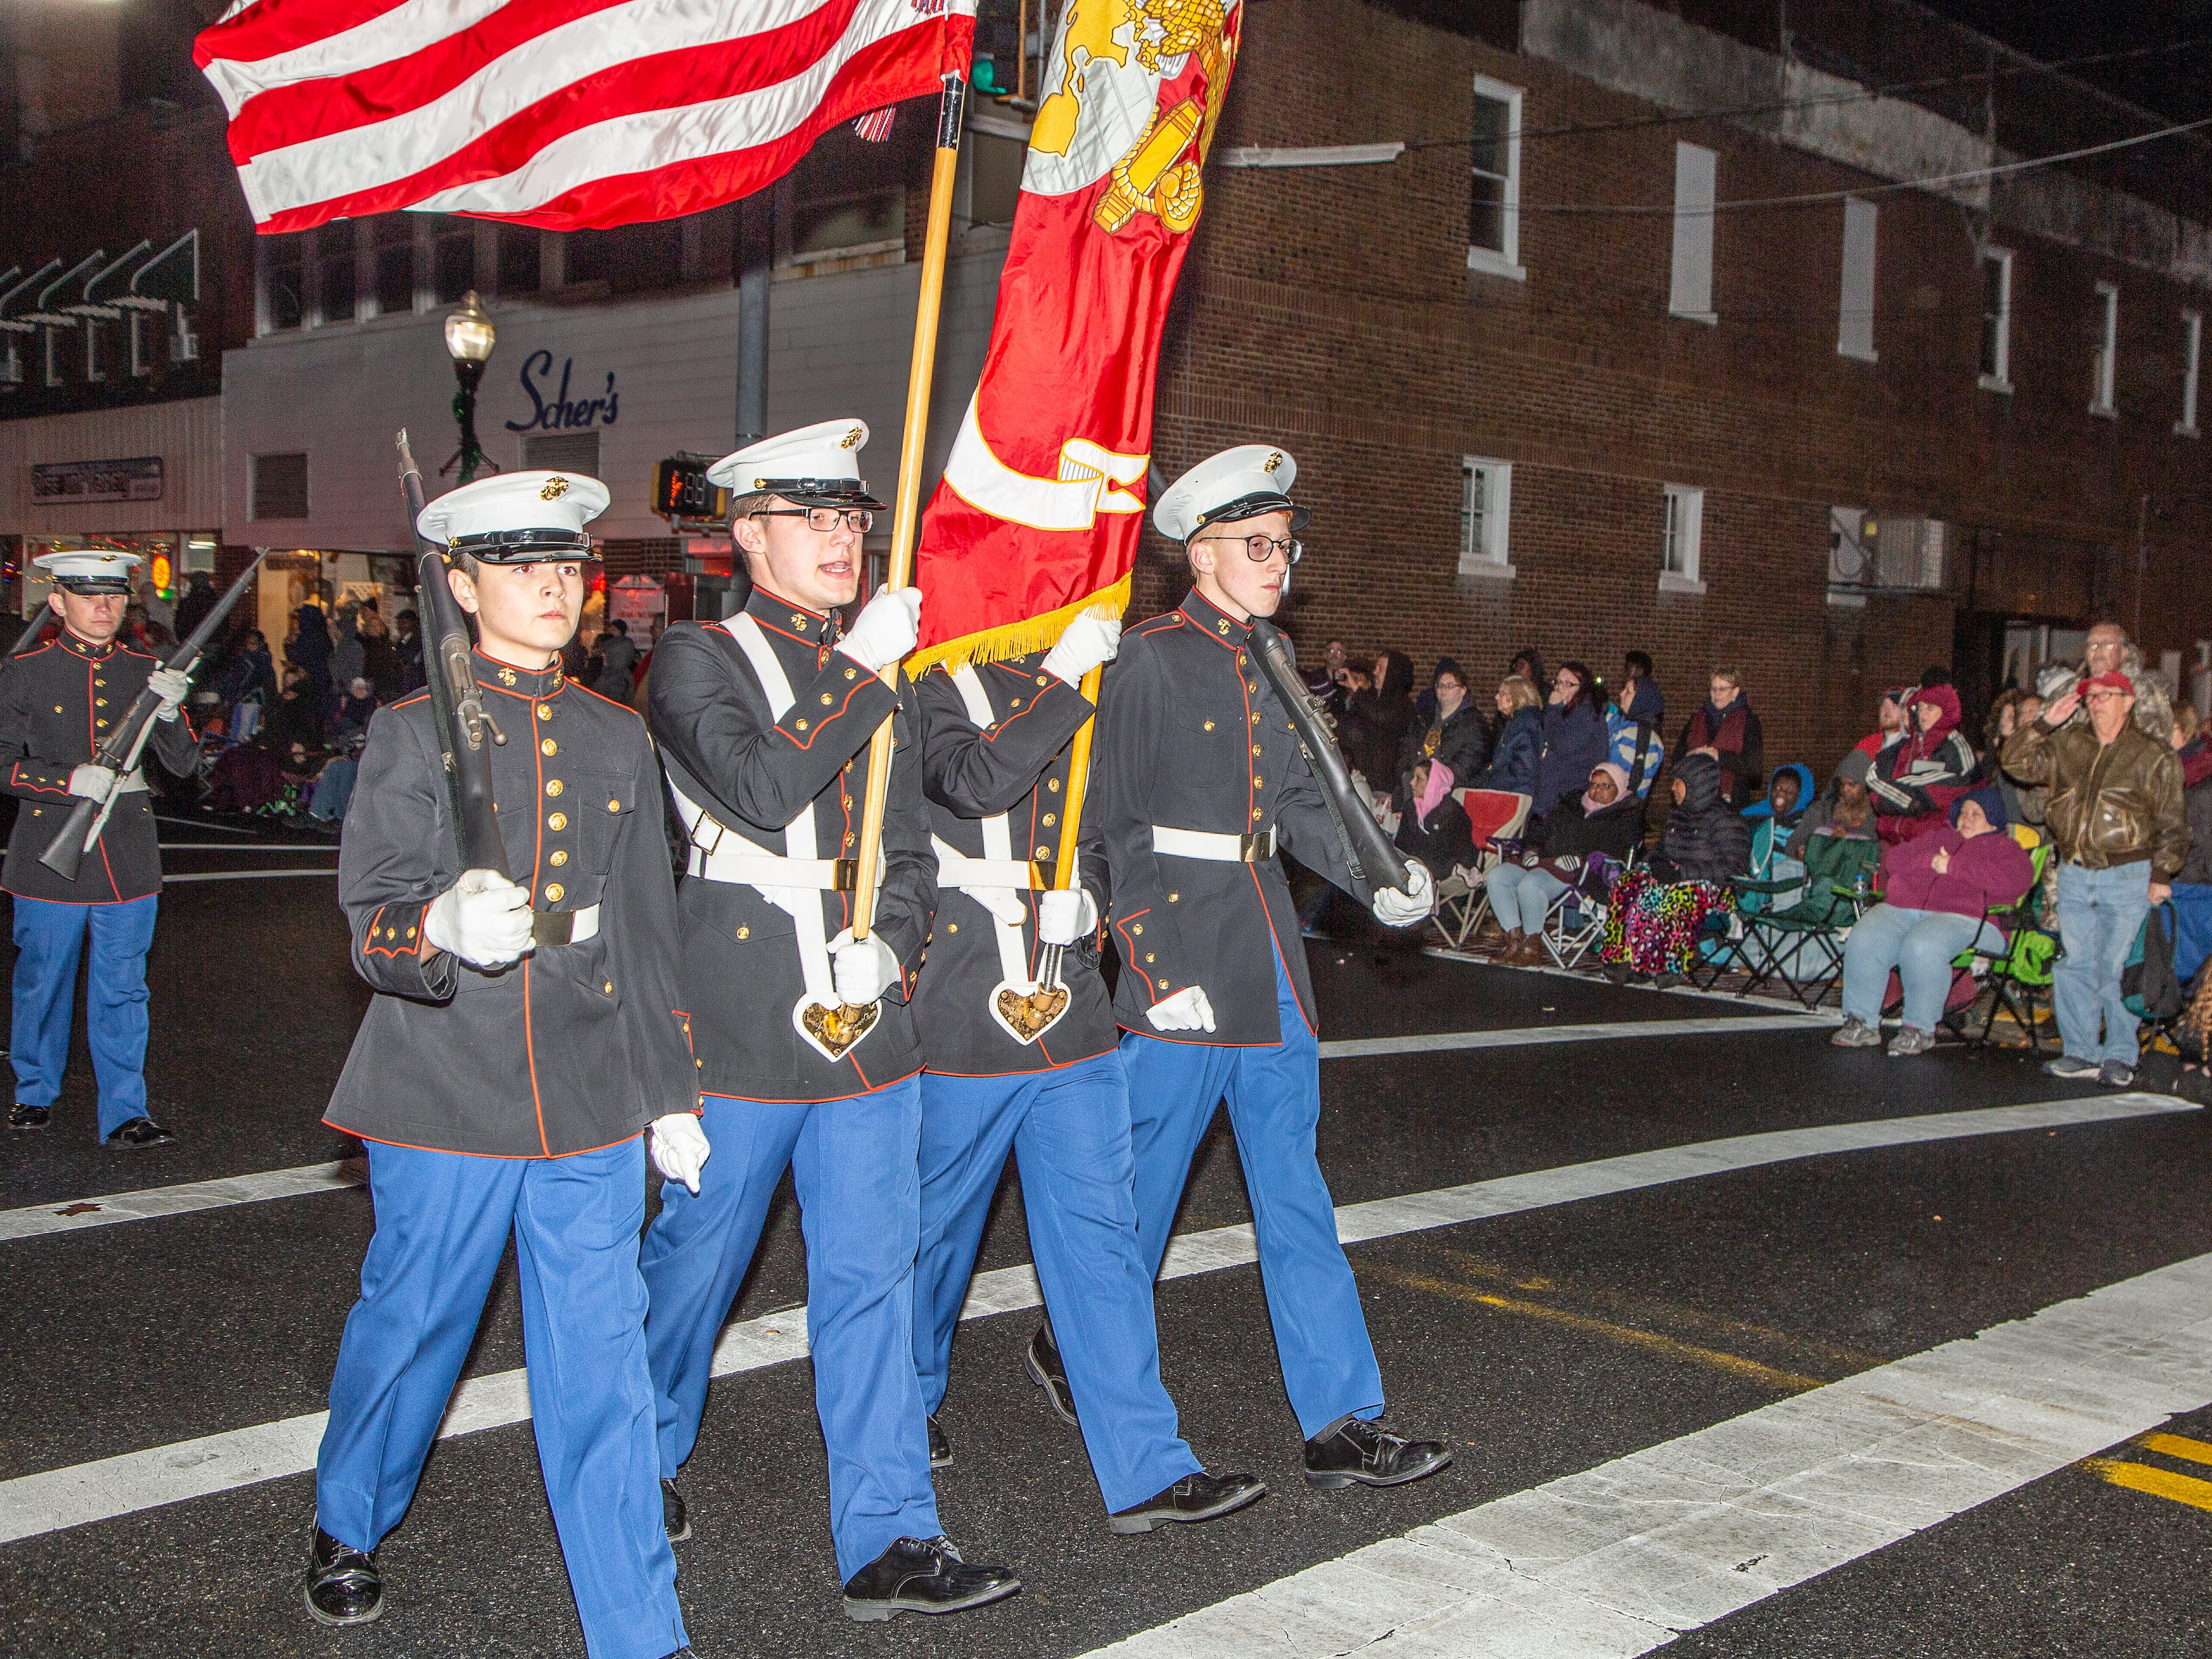 Pocomoke High School ROTC unit marches in the town's annual Christmas parade on Nov. 26.